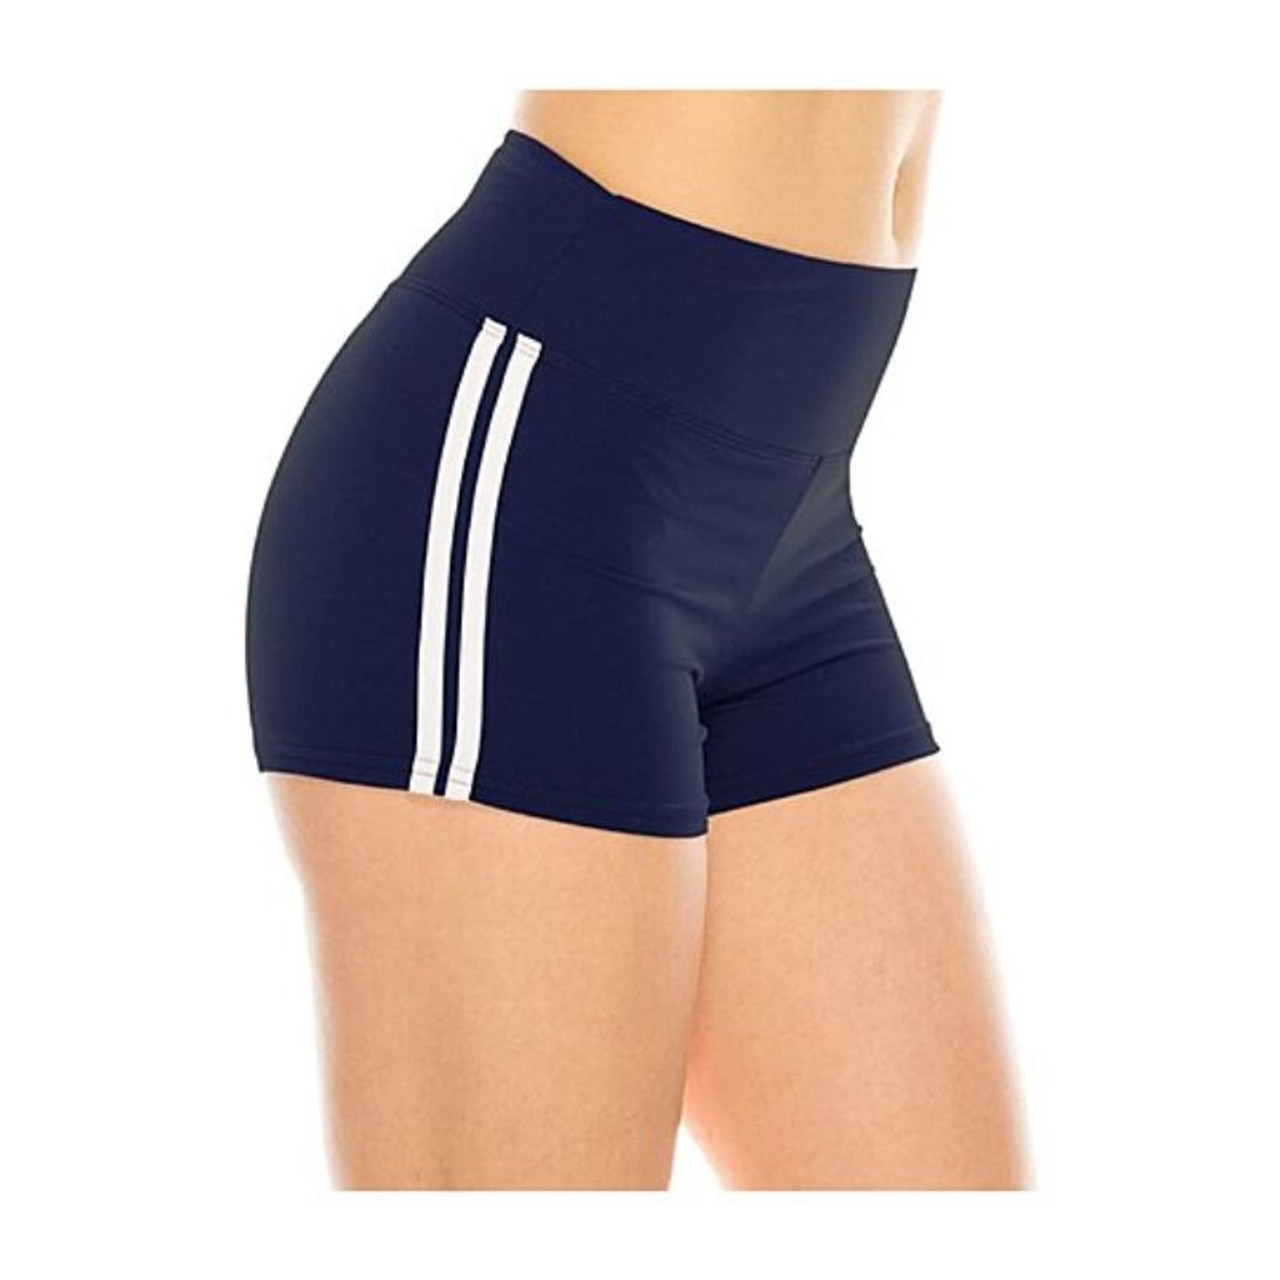 Women's Ultra-Soft Stretchy Athletic Workout Yoga Shorts With Stripes - 4 Pack